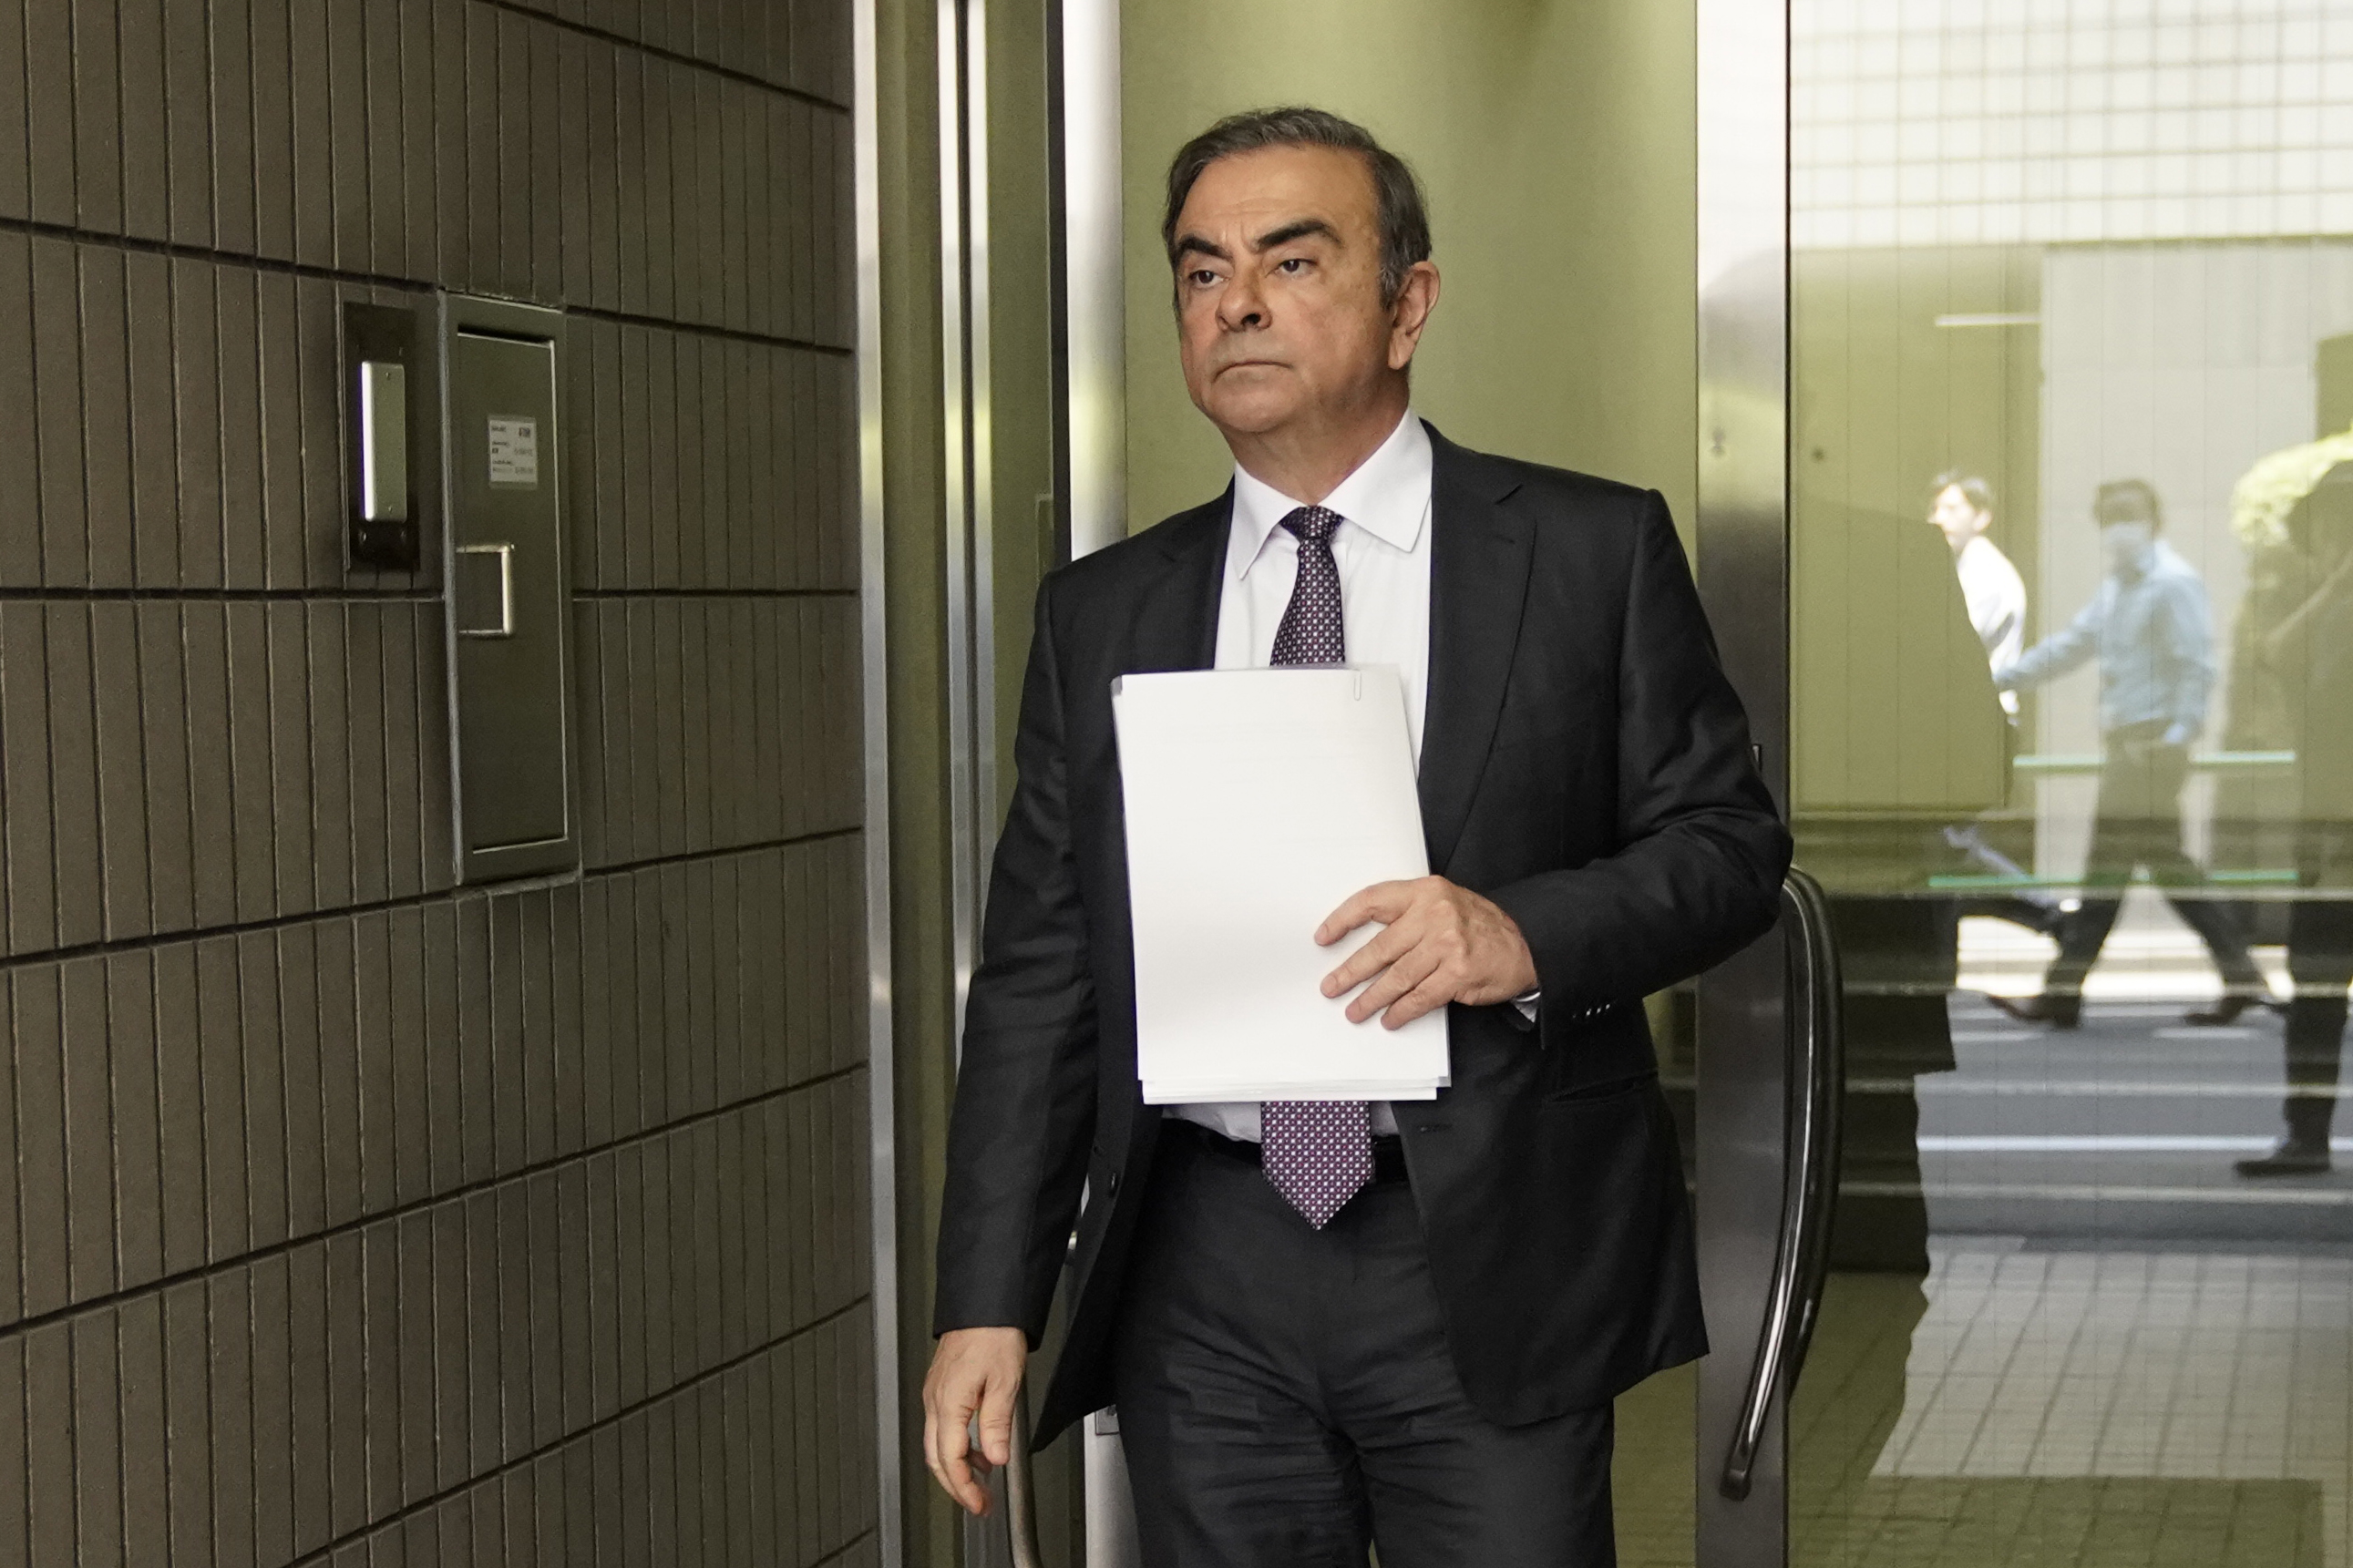 Carlos Ghosn, former chairman of Nissan Motor Co., leaves his lawyer's office in Tokyo, Japan, on Thursday, May 23, 2019.